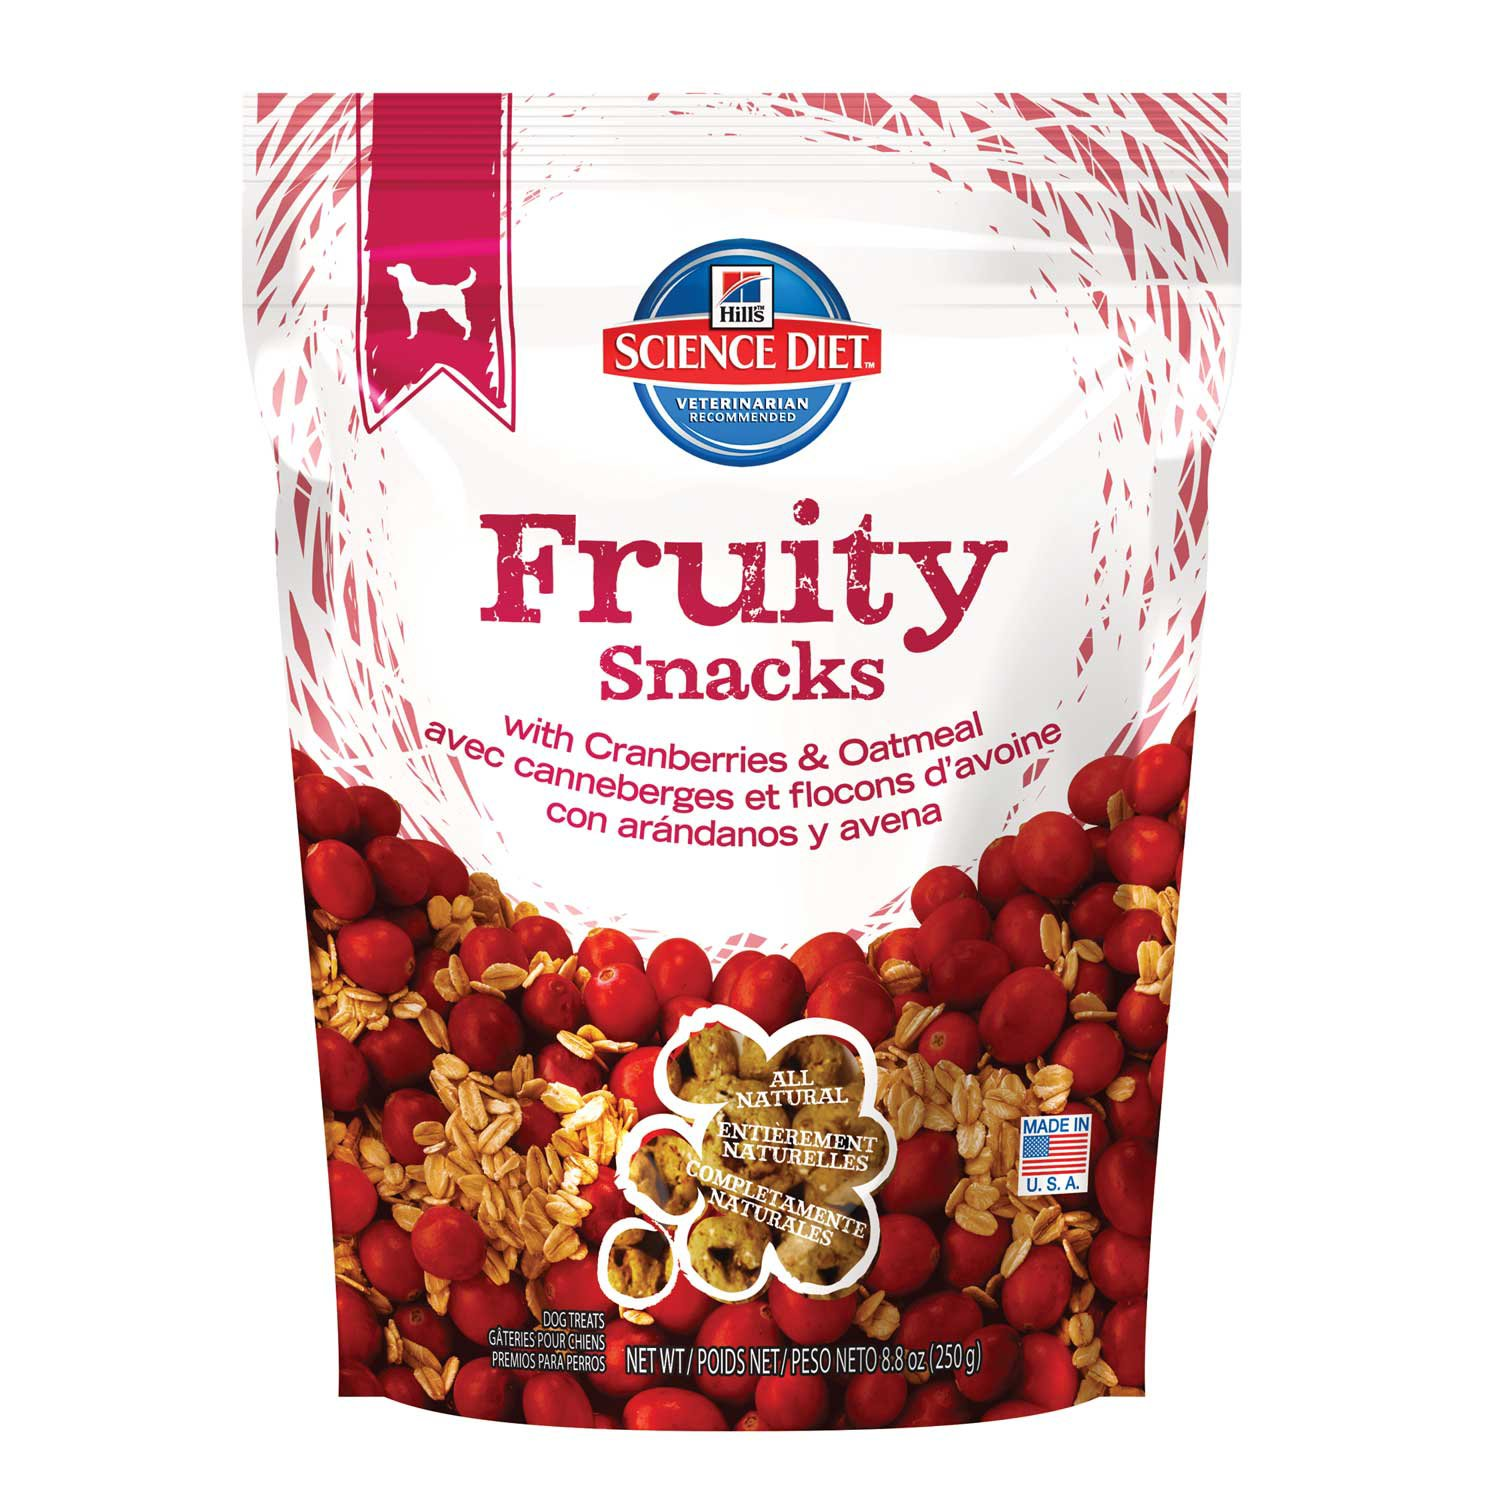 Hill's Science Diet Fruity Snacks with Cranberries & Oatmeal Dog Treats